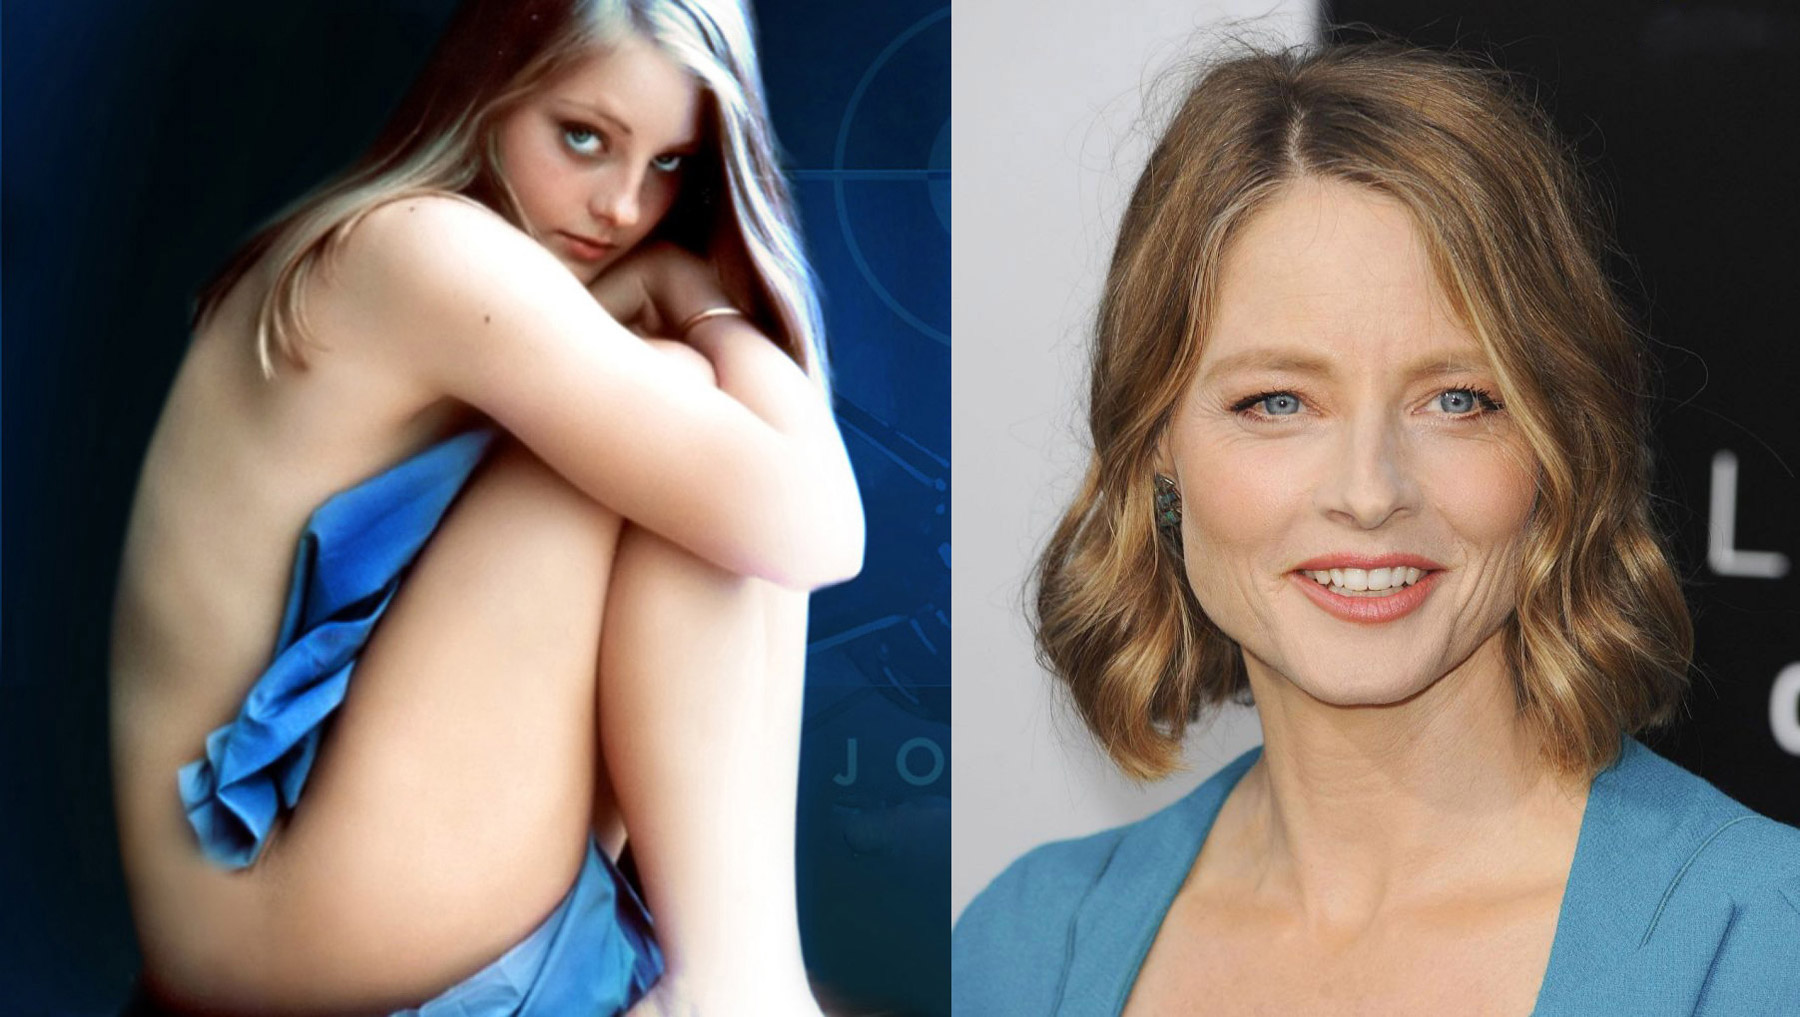 jodie foster - photo #50